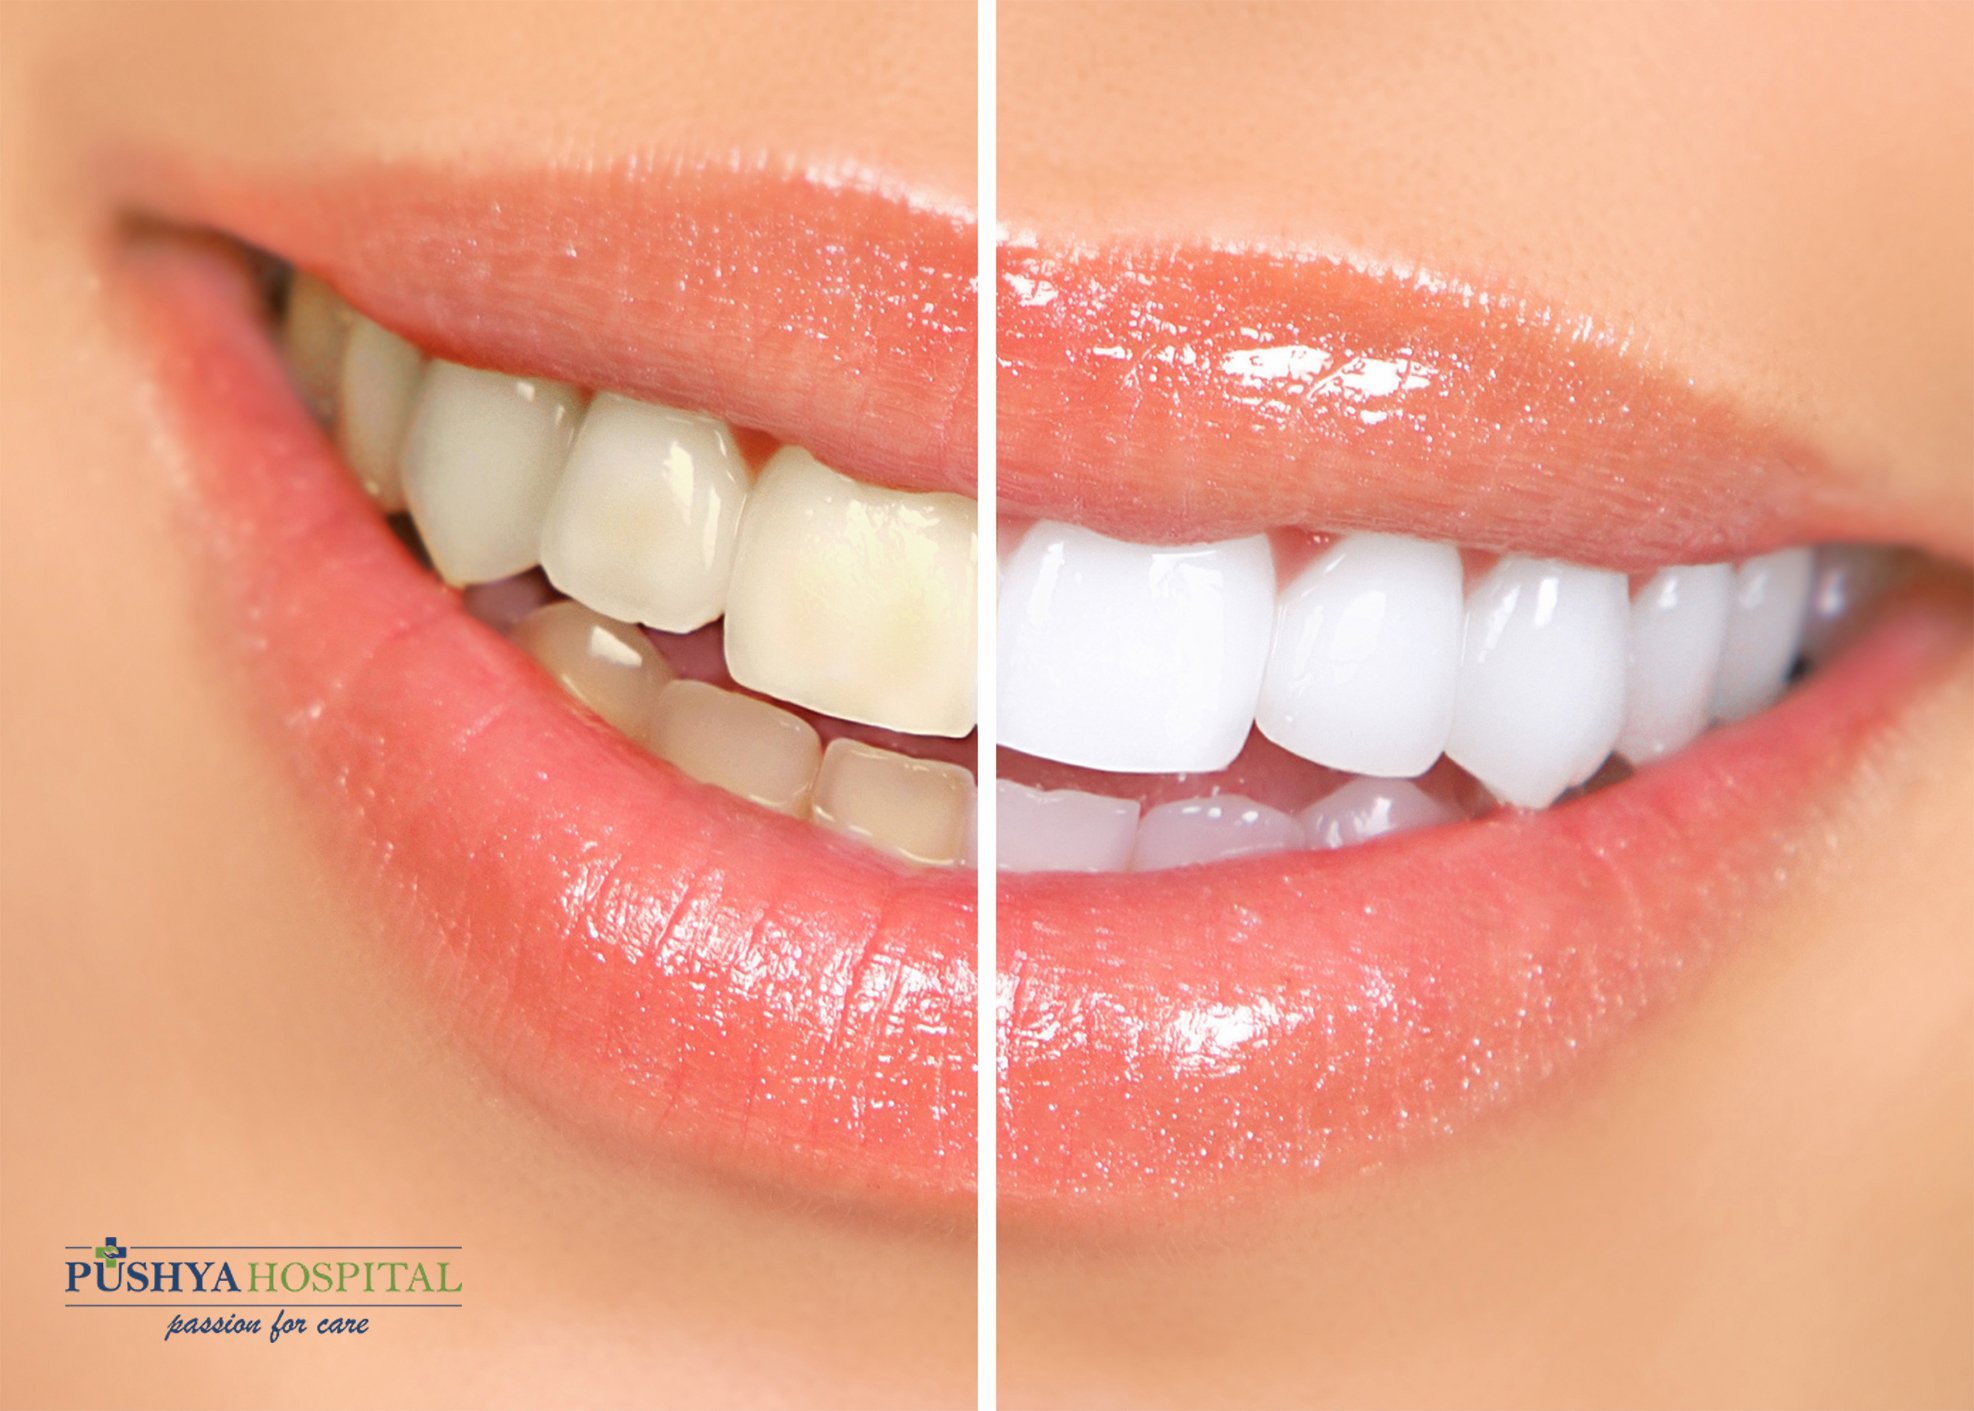 What are the different effects of Teeth Whitening Treatment?